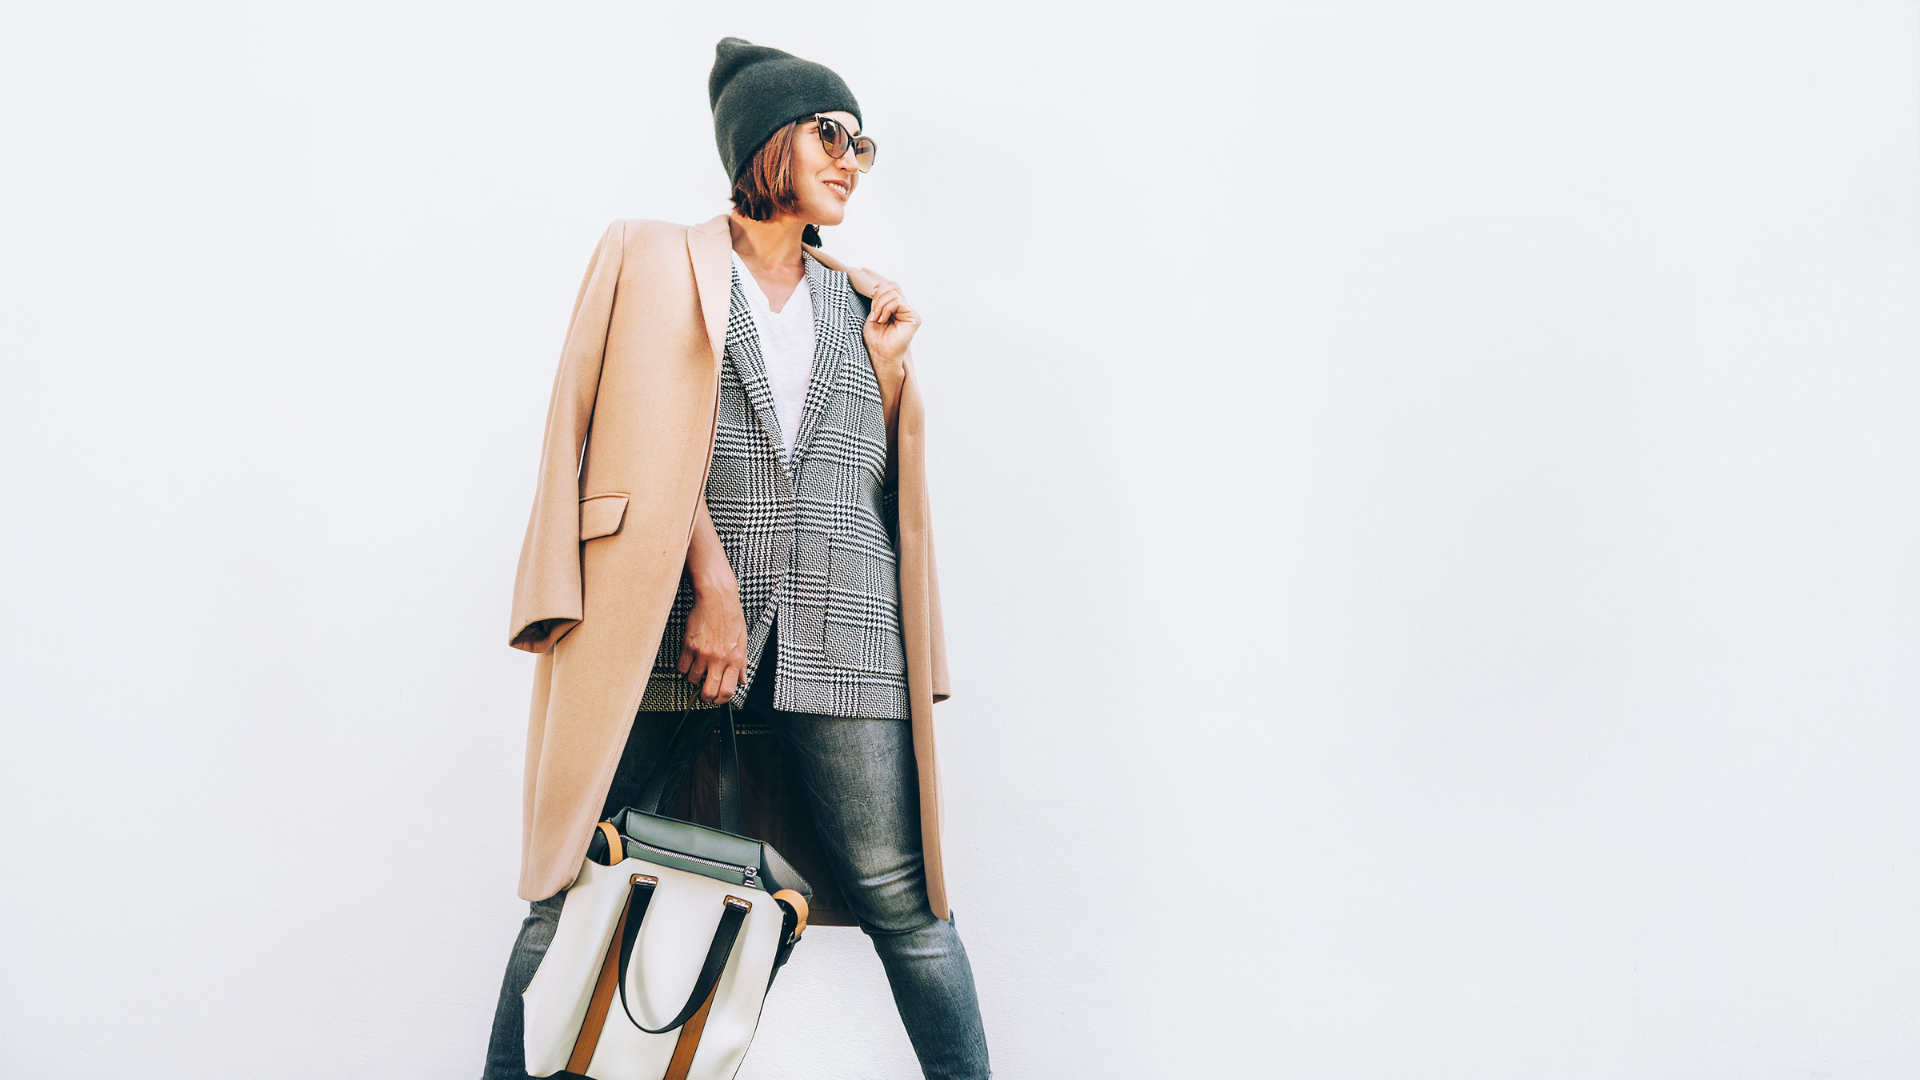 Fashion as a Form of Communication